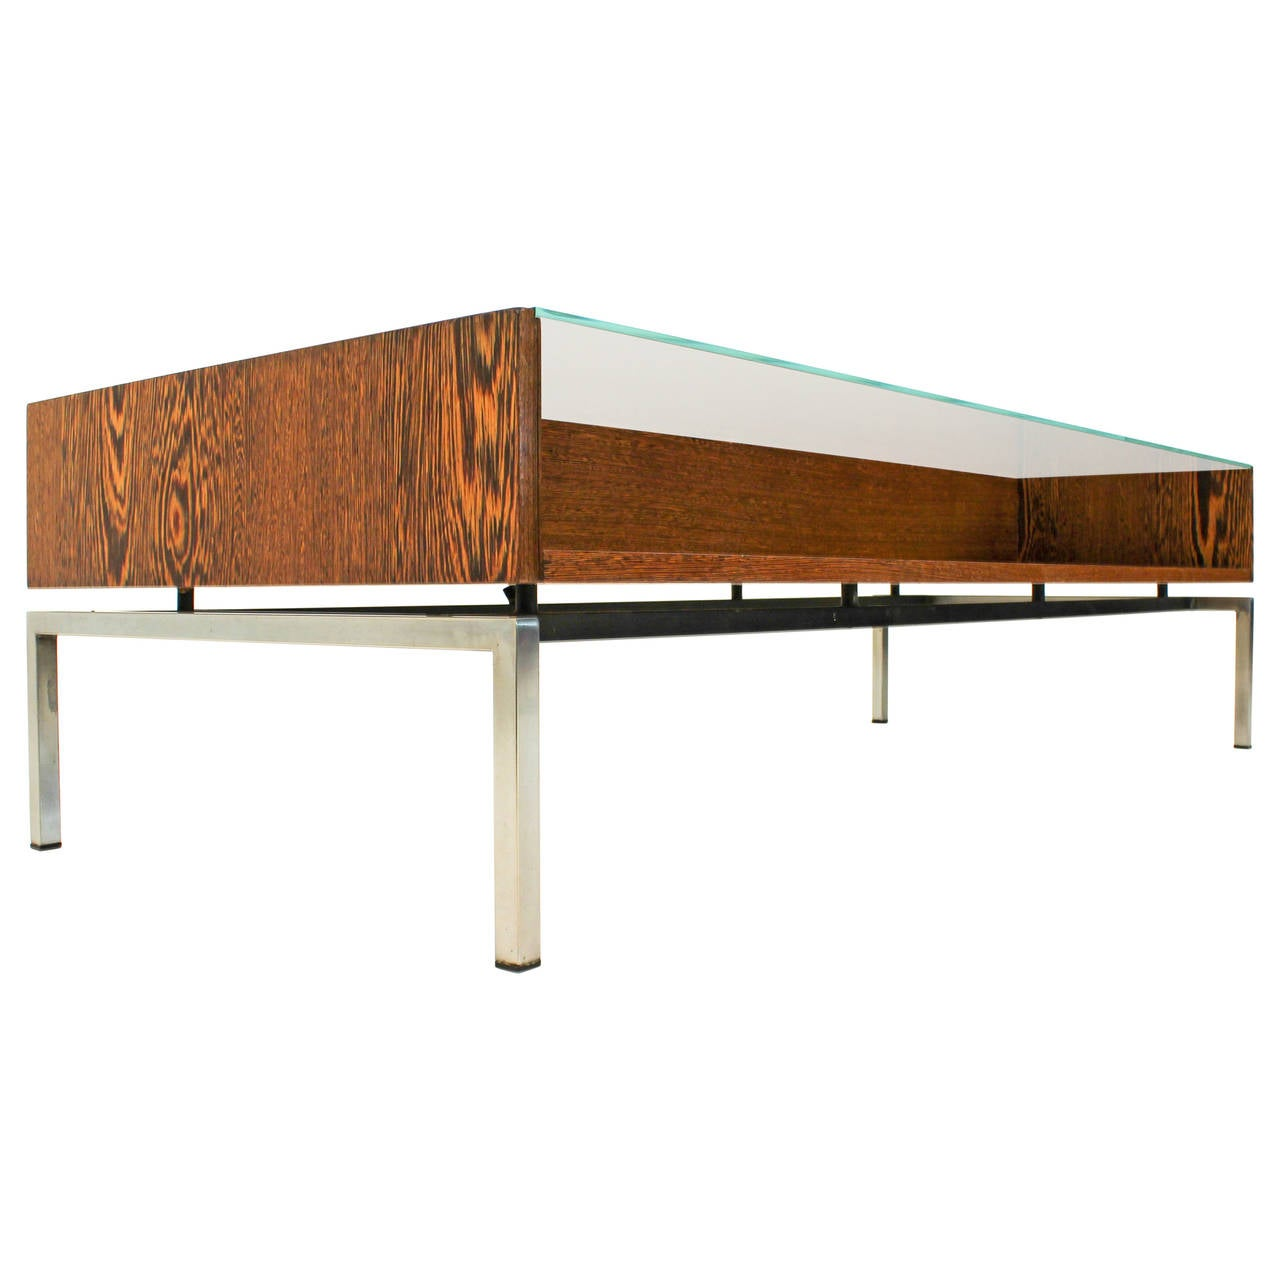 Stylish Mid Century Modern Coffee Table With Glass Top 1960s At 1stdibs